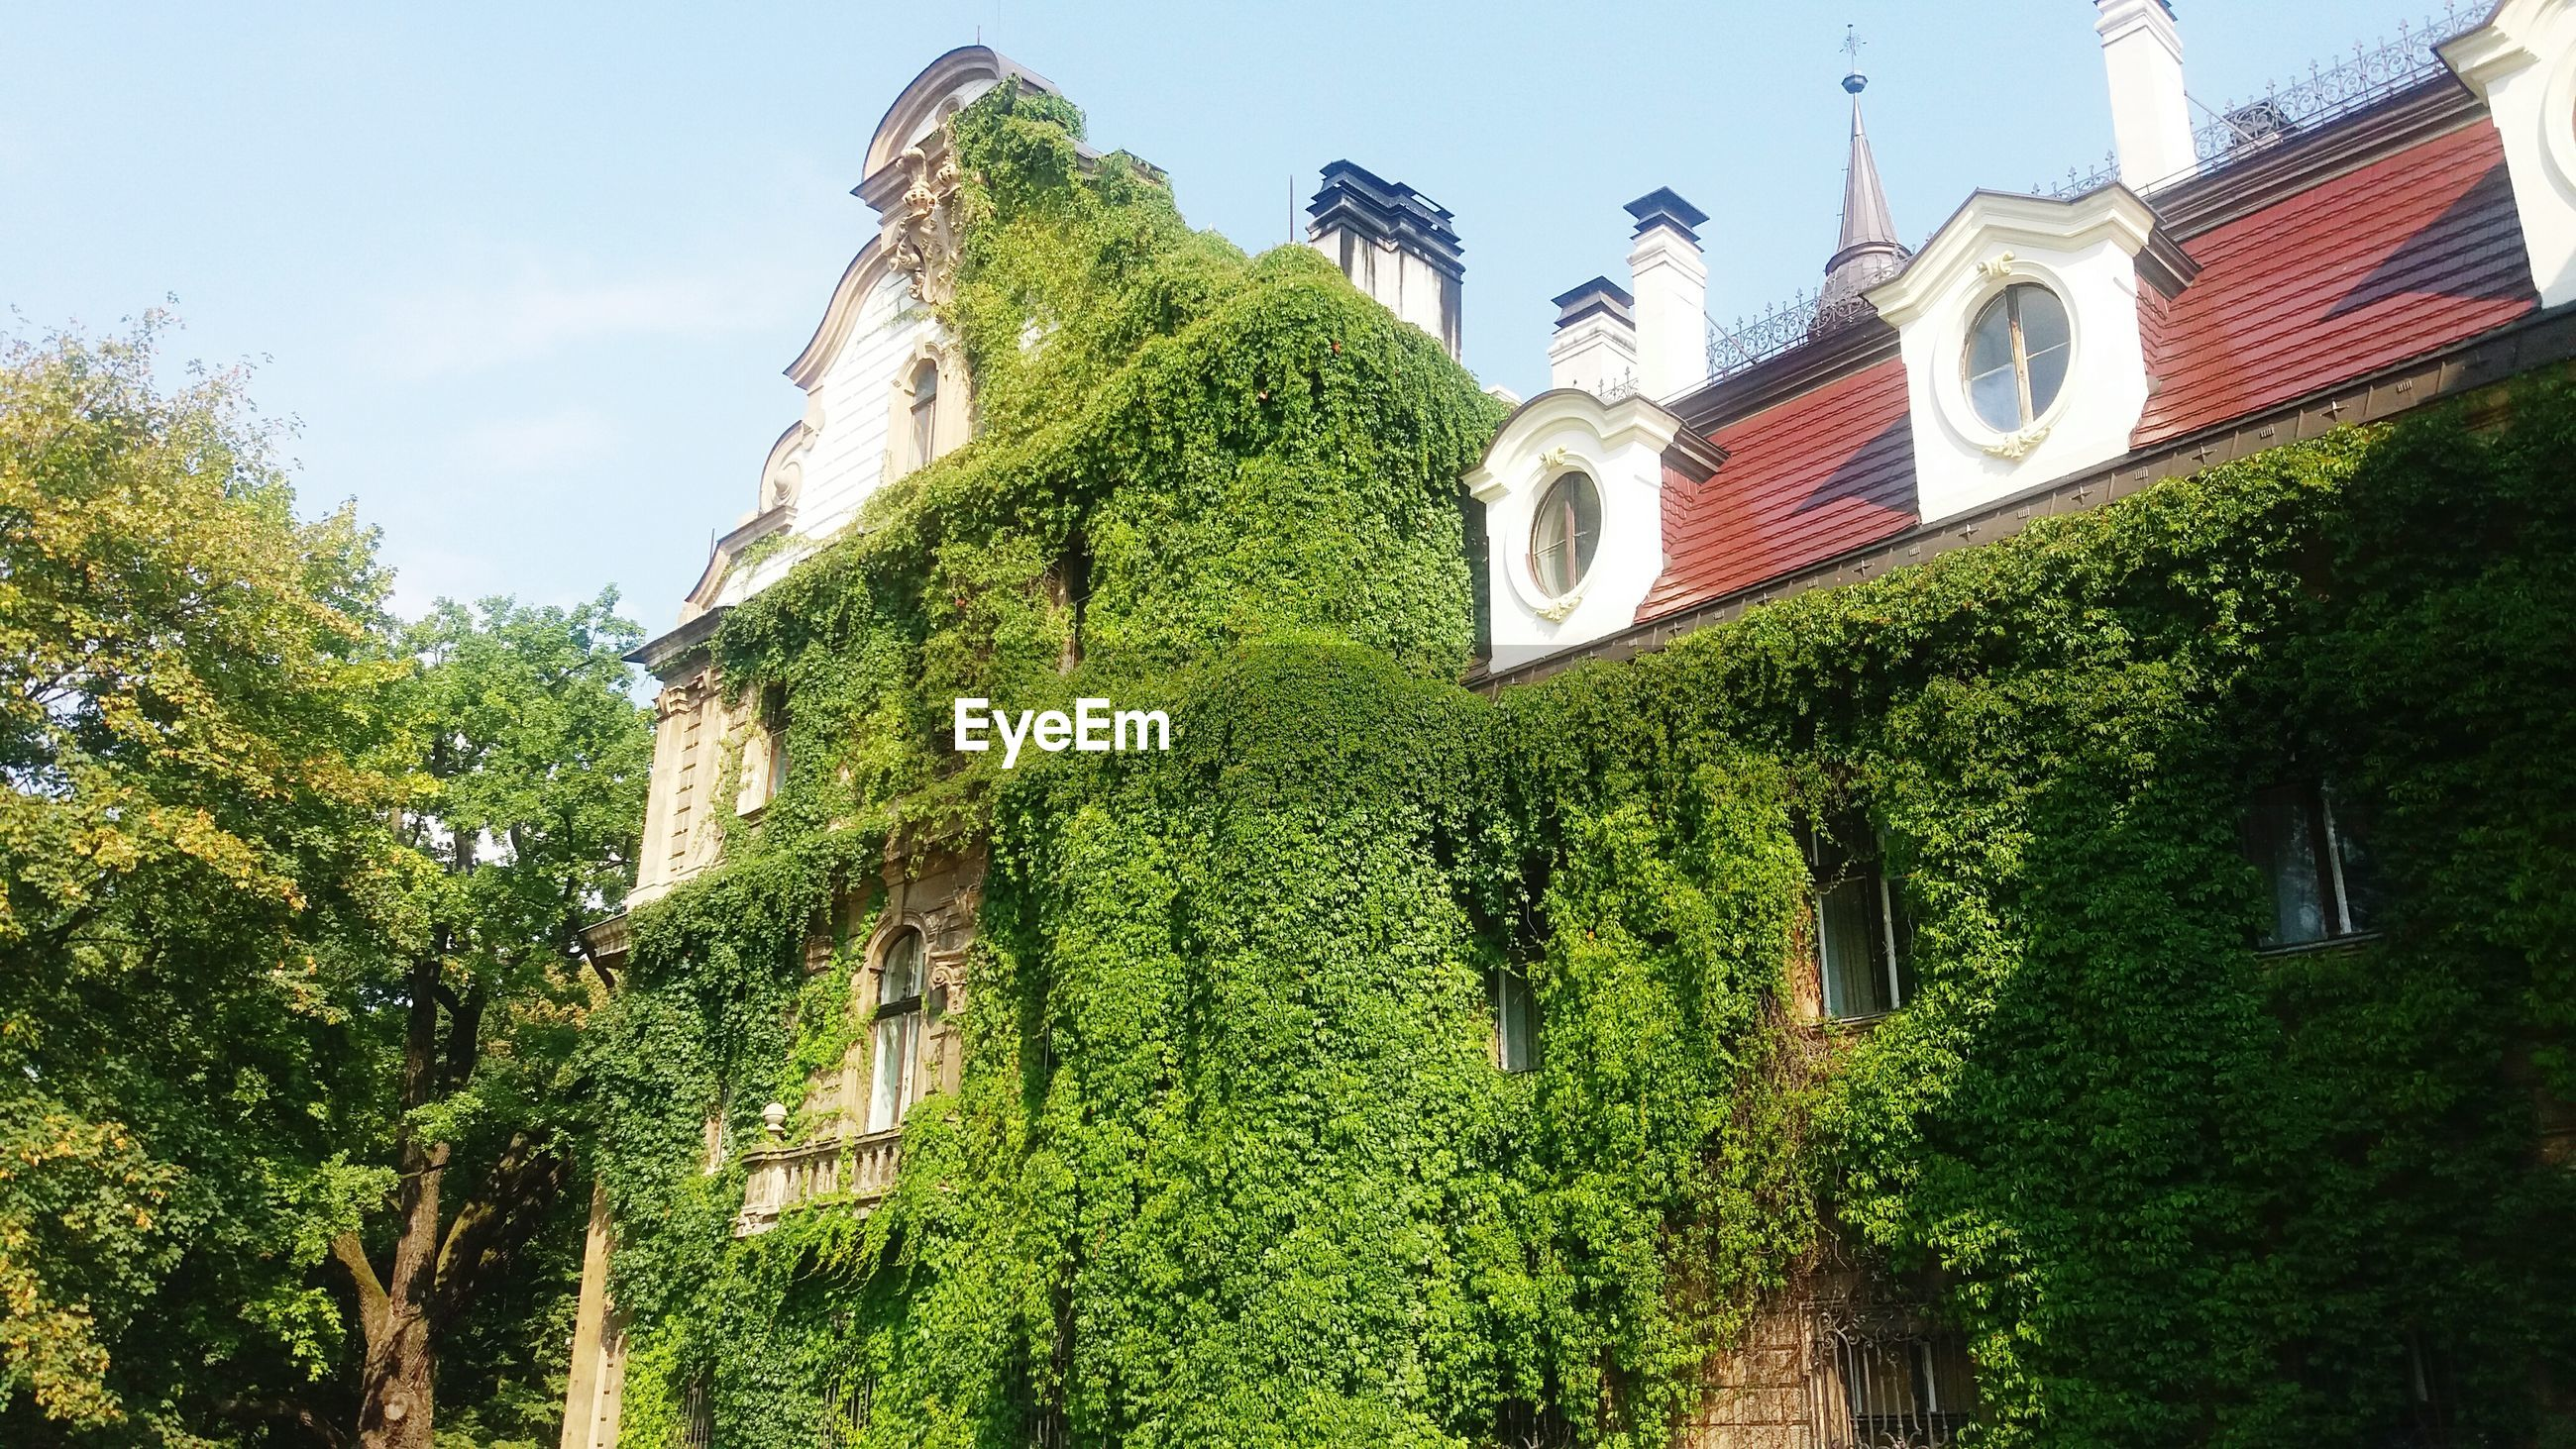 built structure, architecture, building exterior, growth, low angle view, green color, religion, ivy, house, church, residential building, creeper plant, residential structure, plant, creeper, sky, place of worship, lush foliage, outdoors, day, old town, freshness, green, stone, no people, overgrown, bell tower